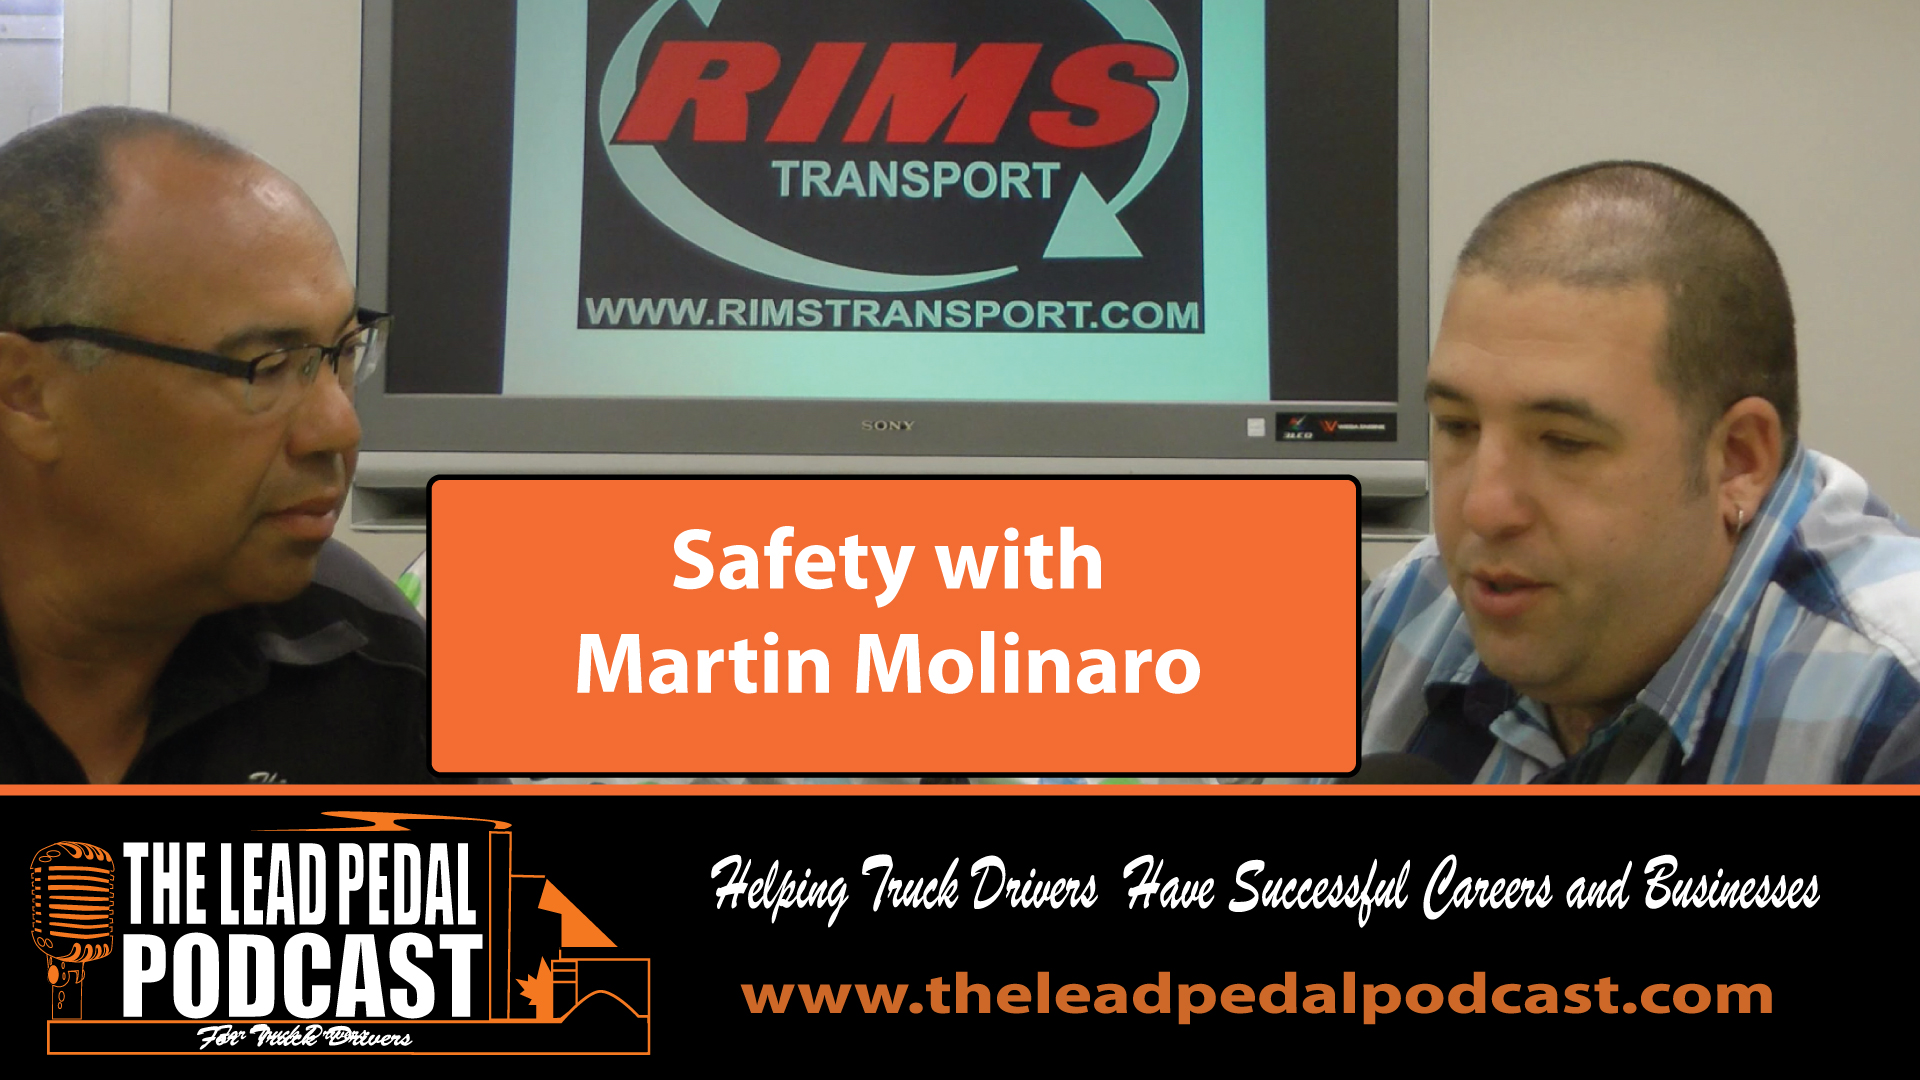 Safety with Martin Molinaro